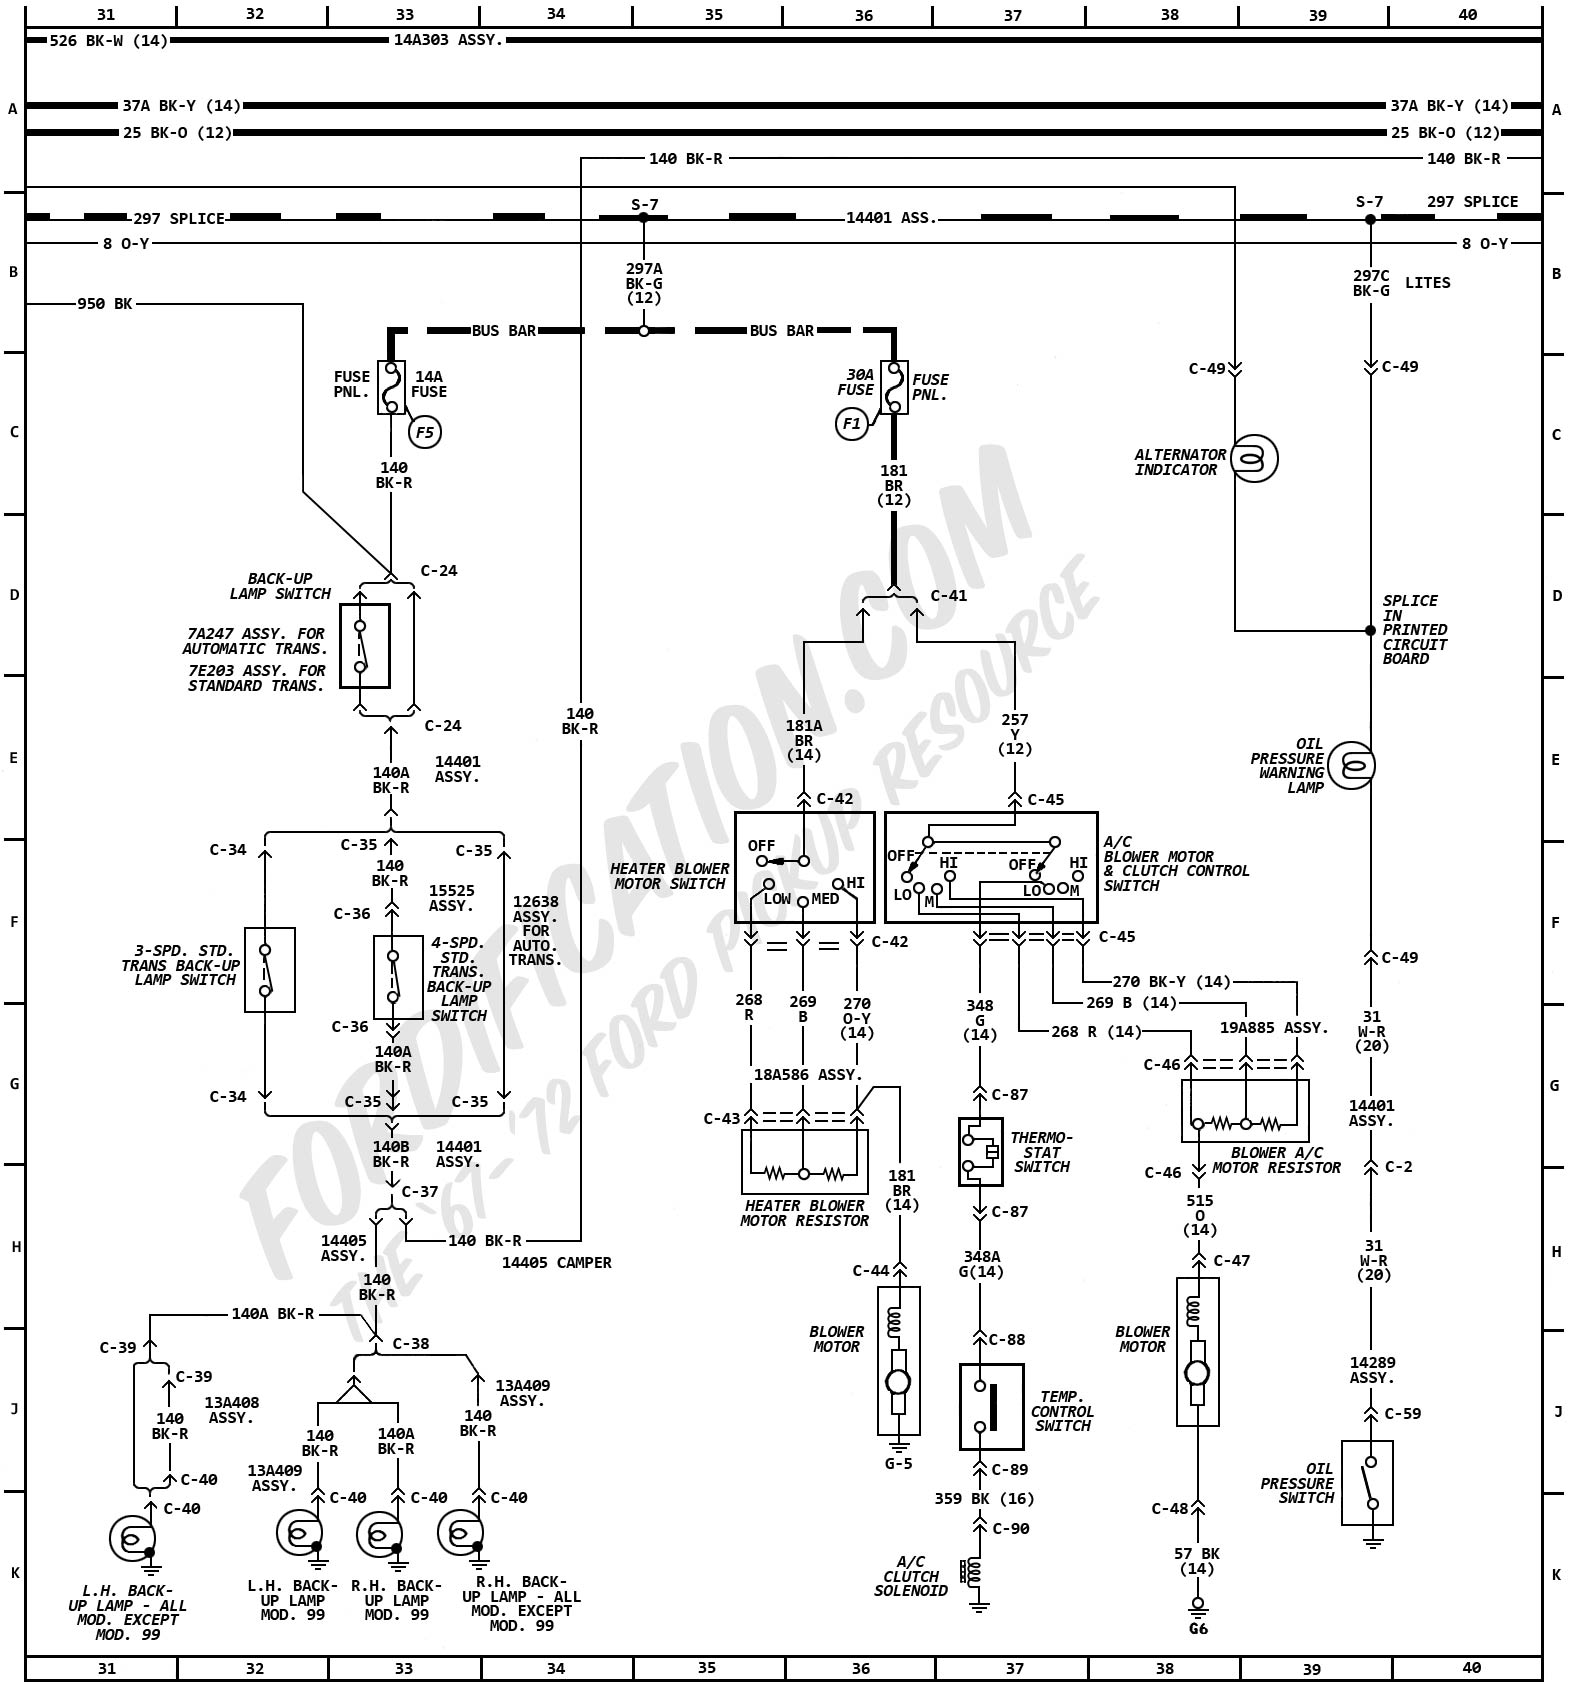 F250 7 3l wiring diagram blower on 1972 ford truck wiring diagrams fordification com Ford Super Duty Wiring Diagram 1990 Ford F-250 7 3 Wiring Diagram